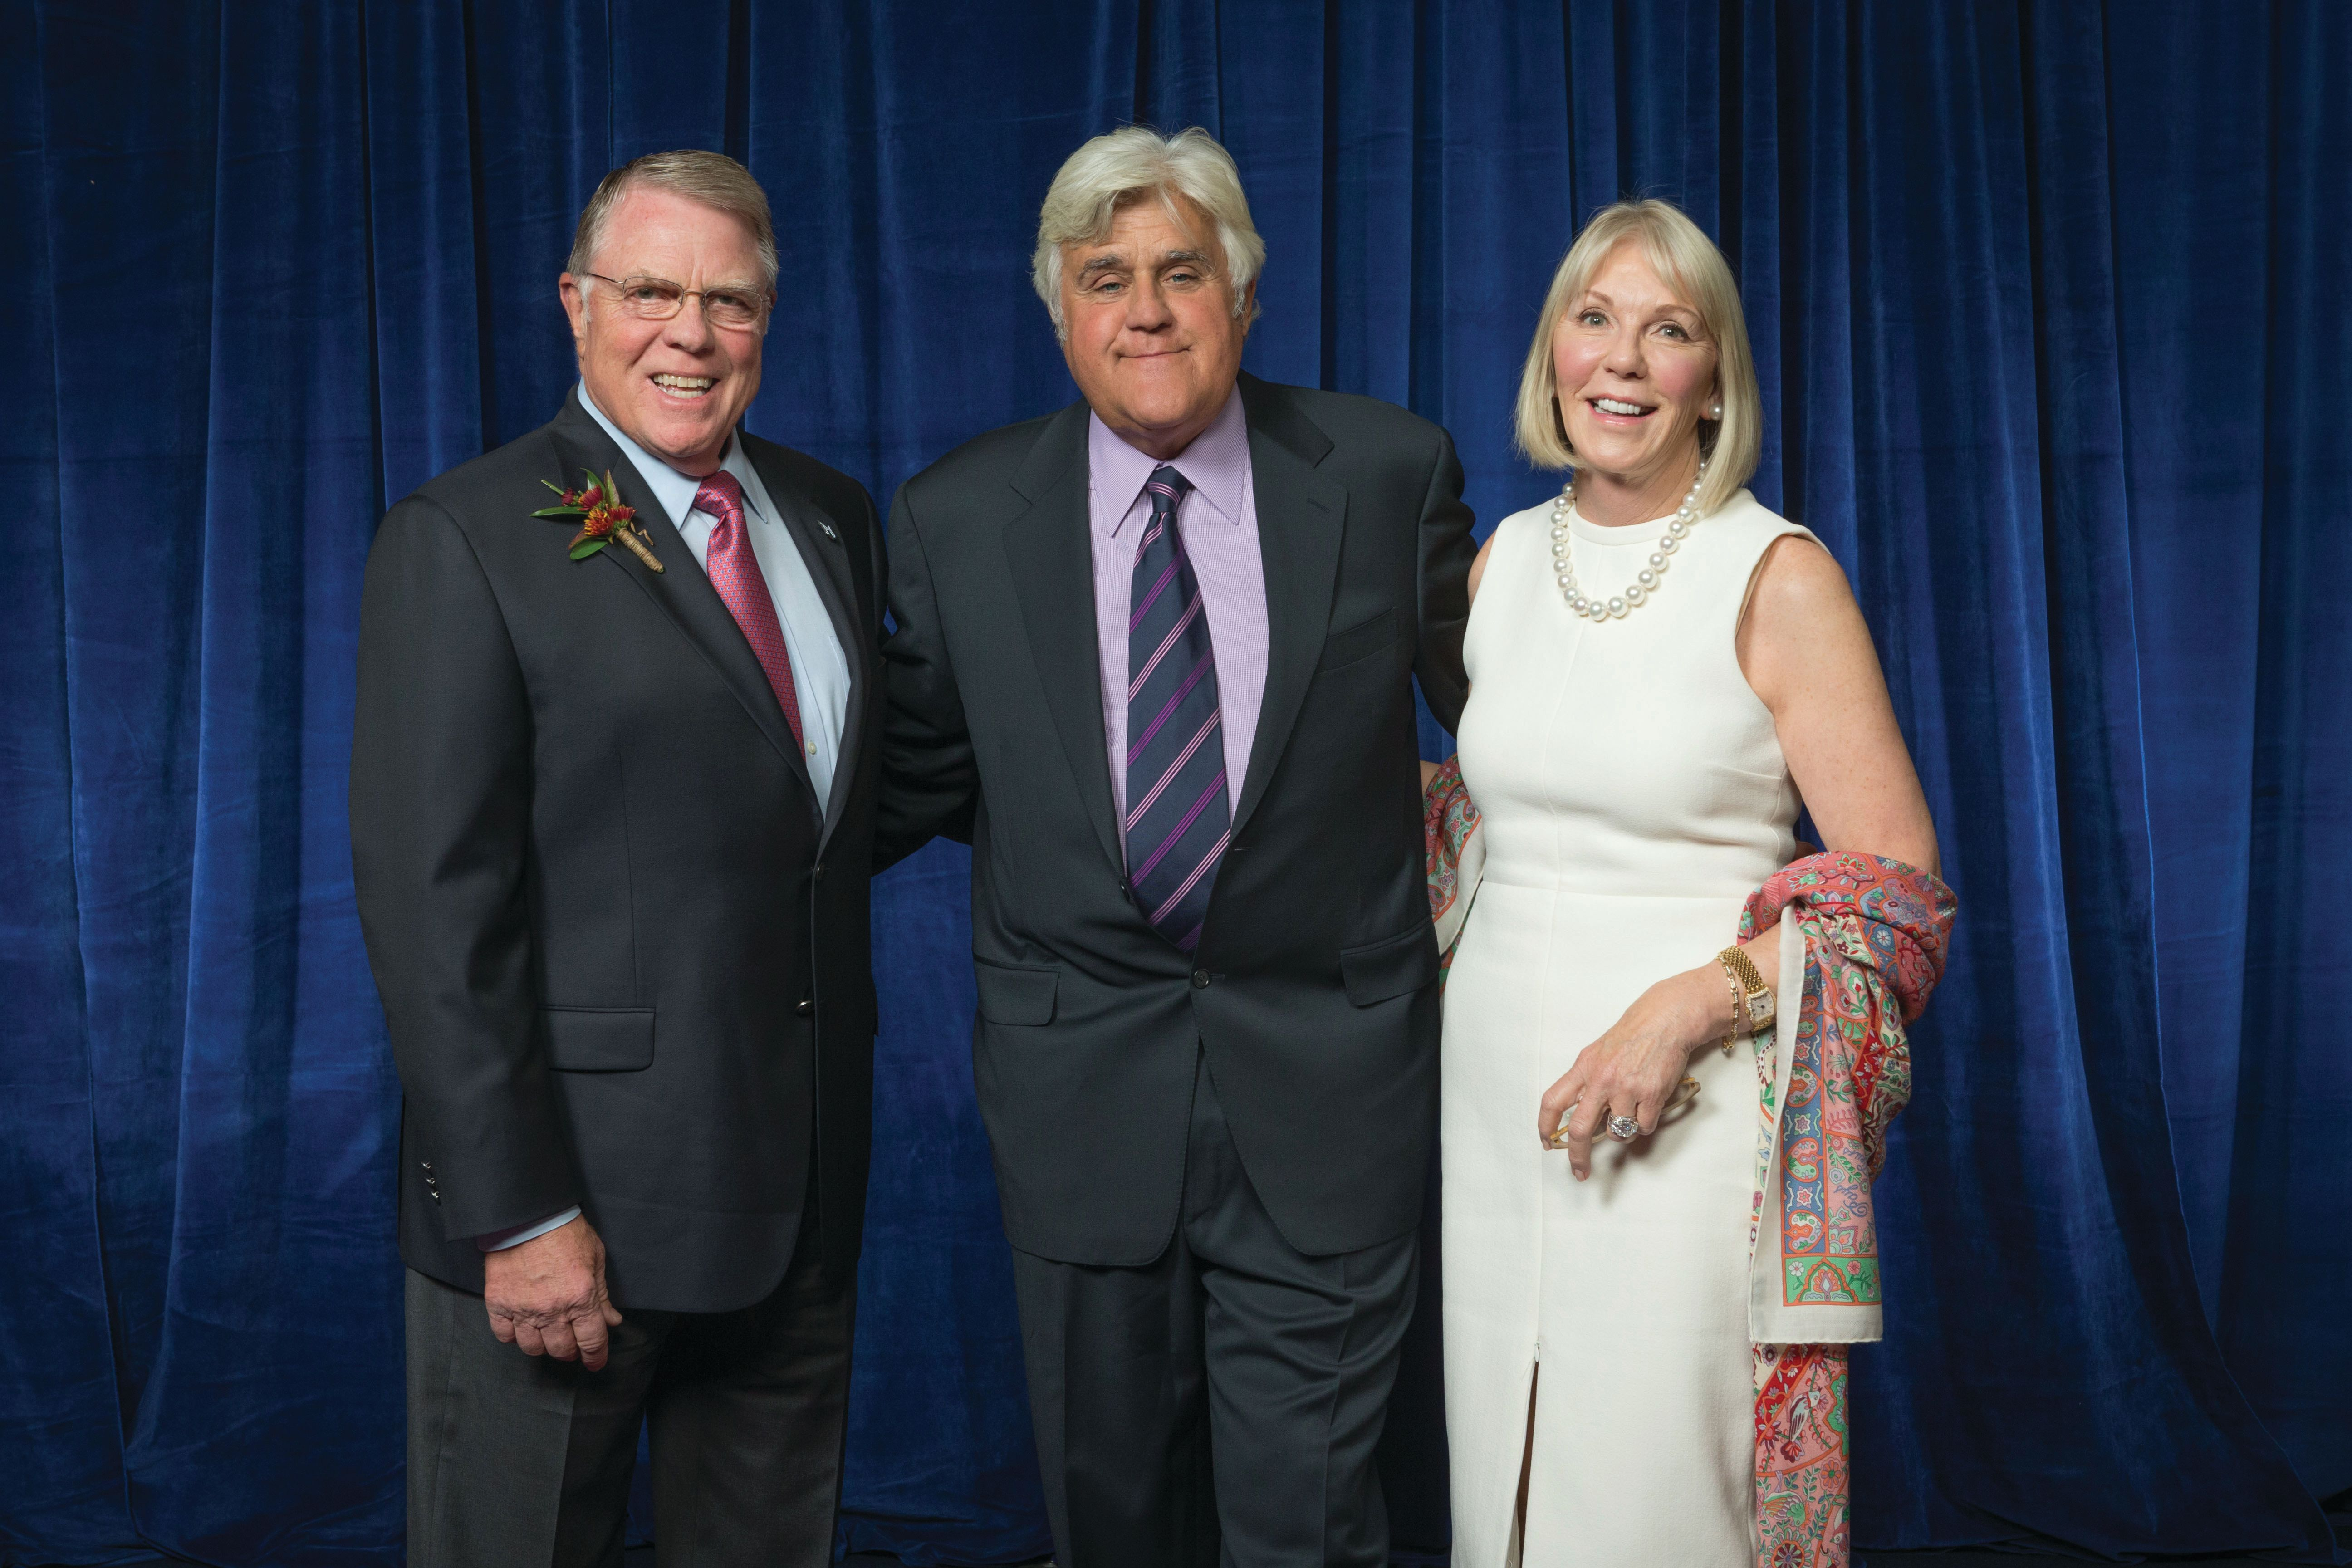 Peter and julie stott with jay leno tzcmaw